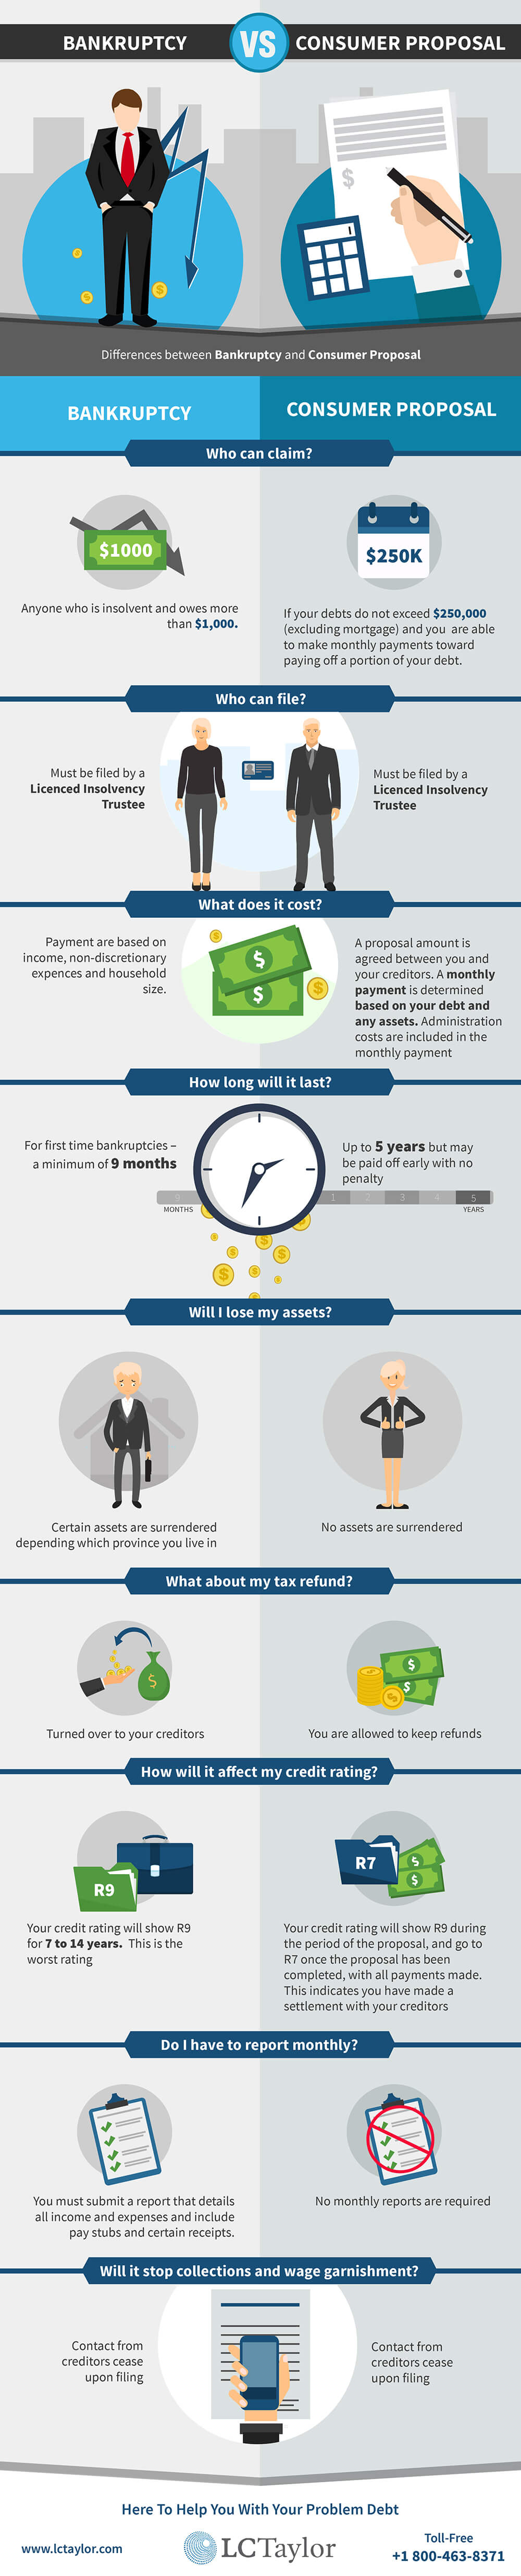 lc-taylor-infographic-consumer-proposal